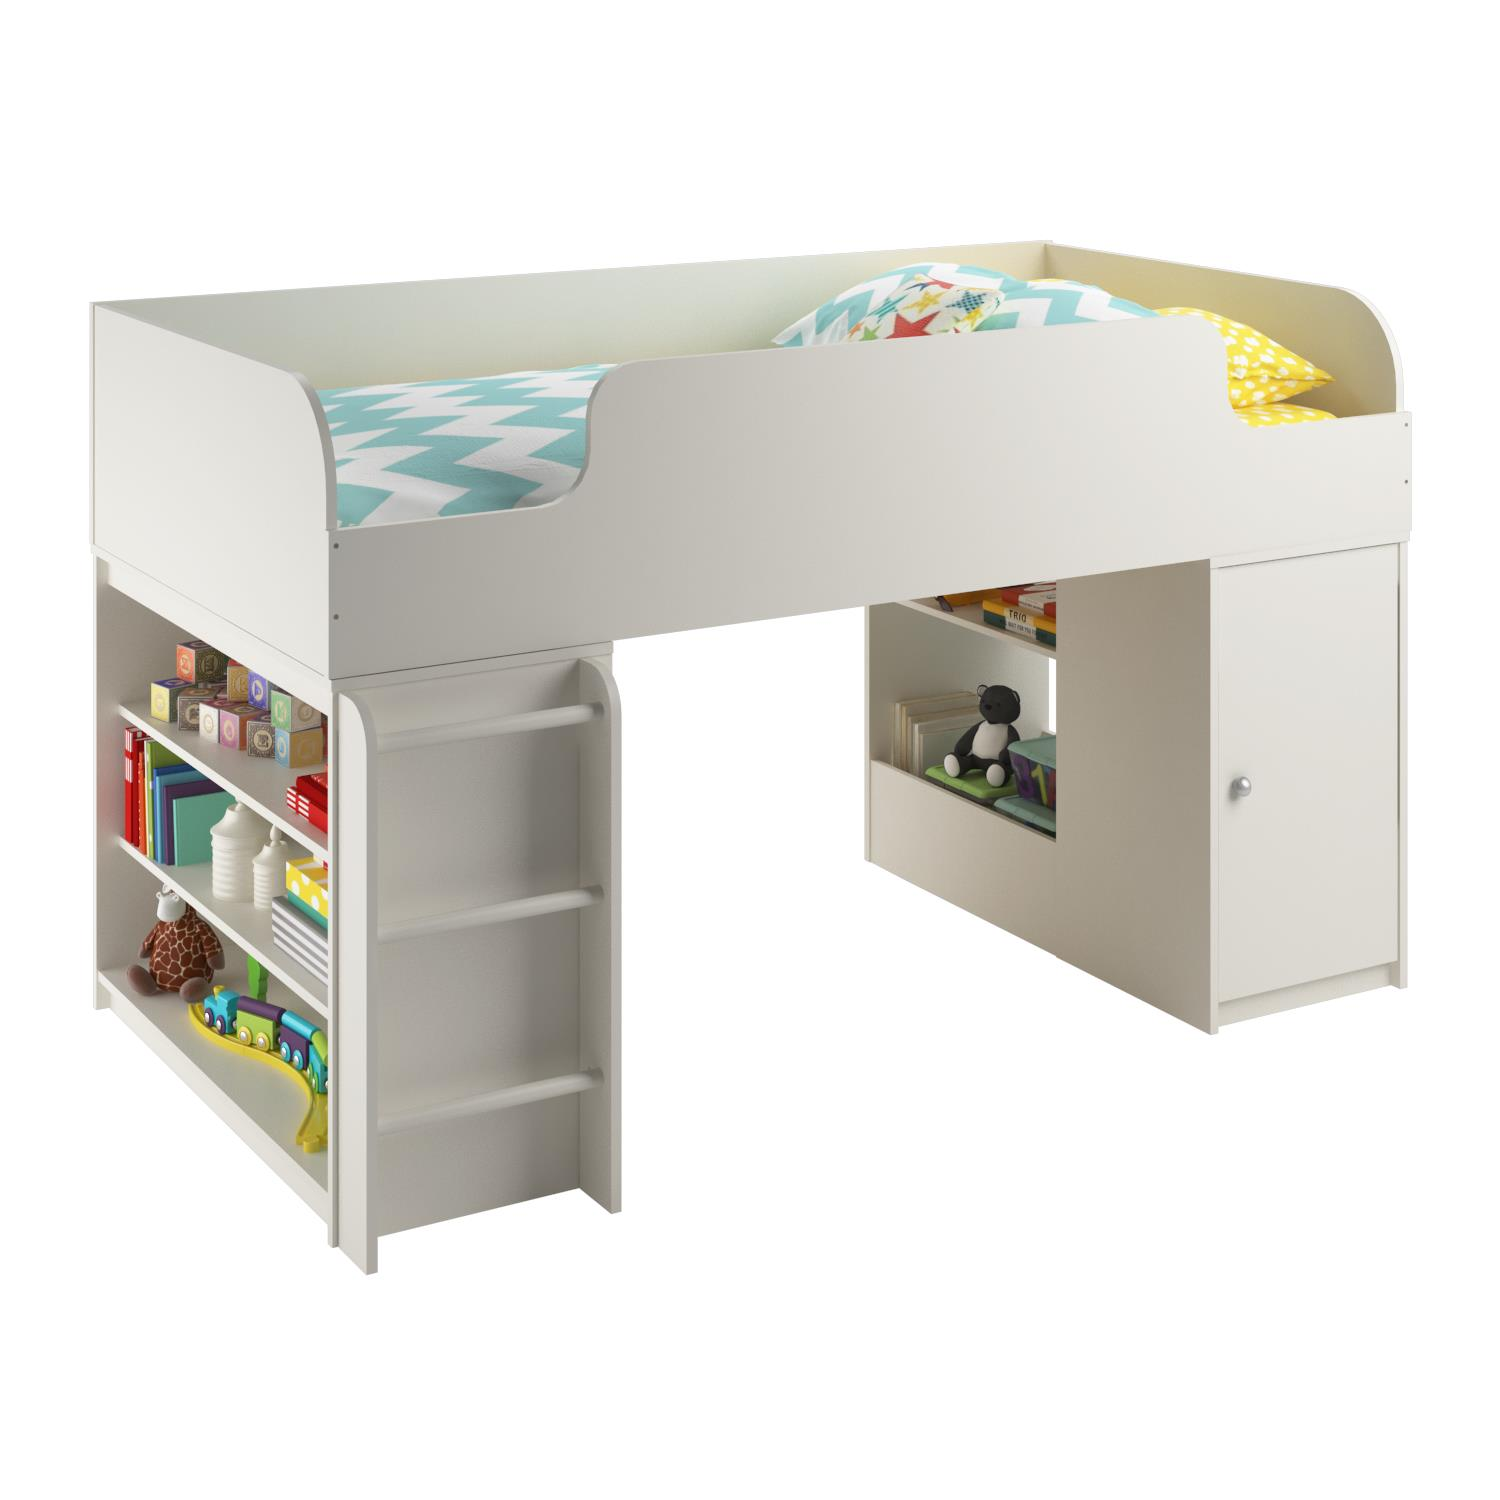 Ameriwood Home Elements Loft Bed with Bookcase and Toy Box Bookcase, White